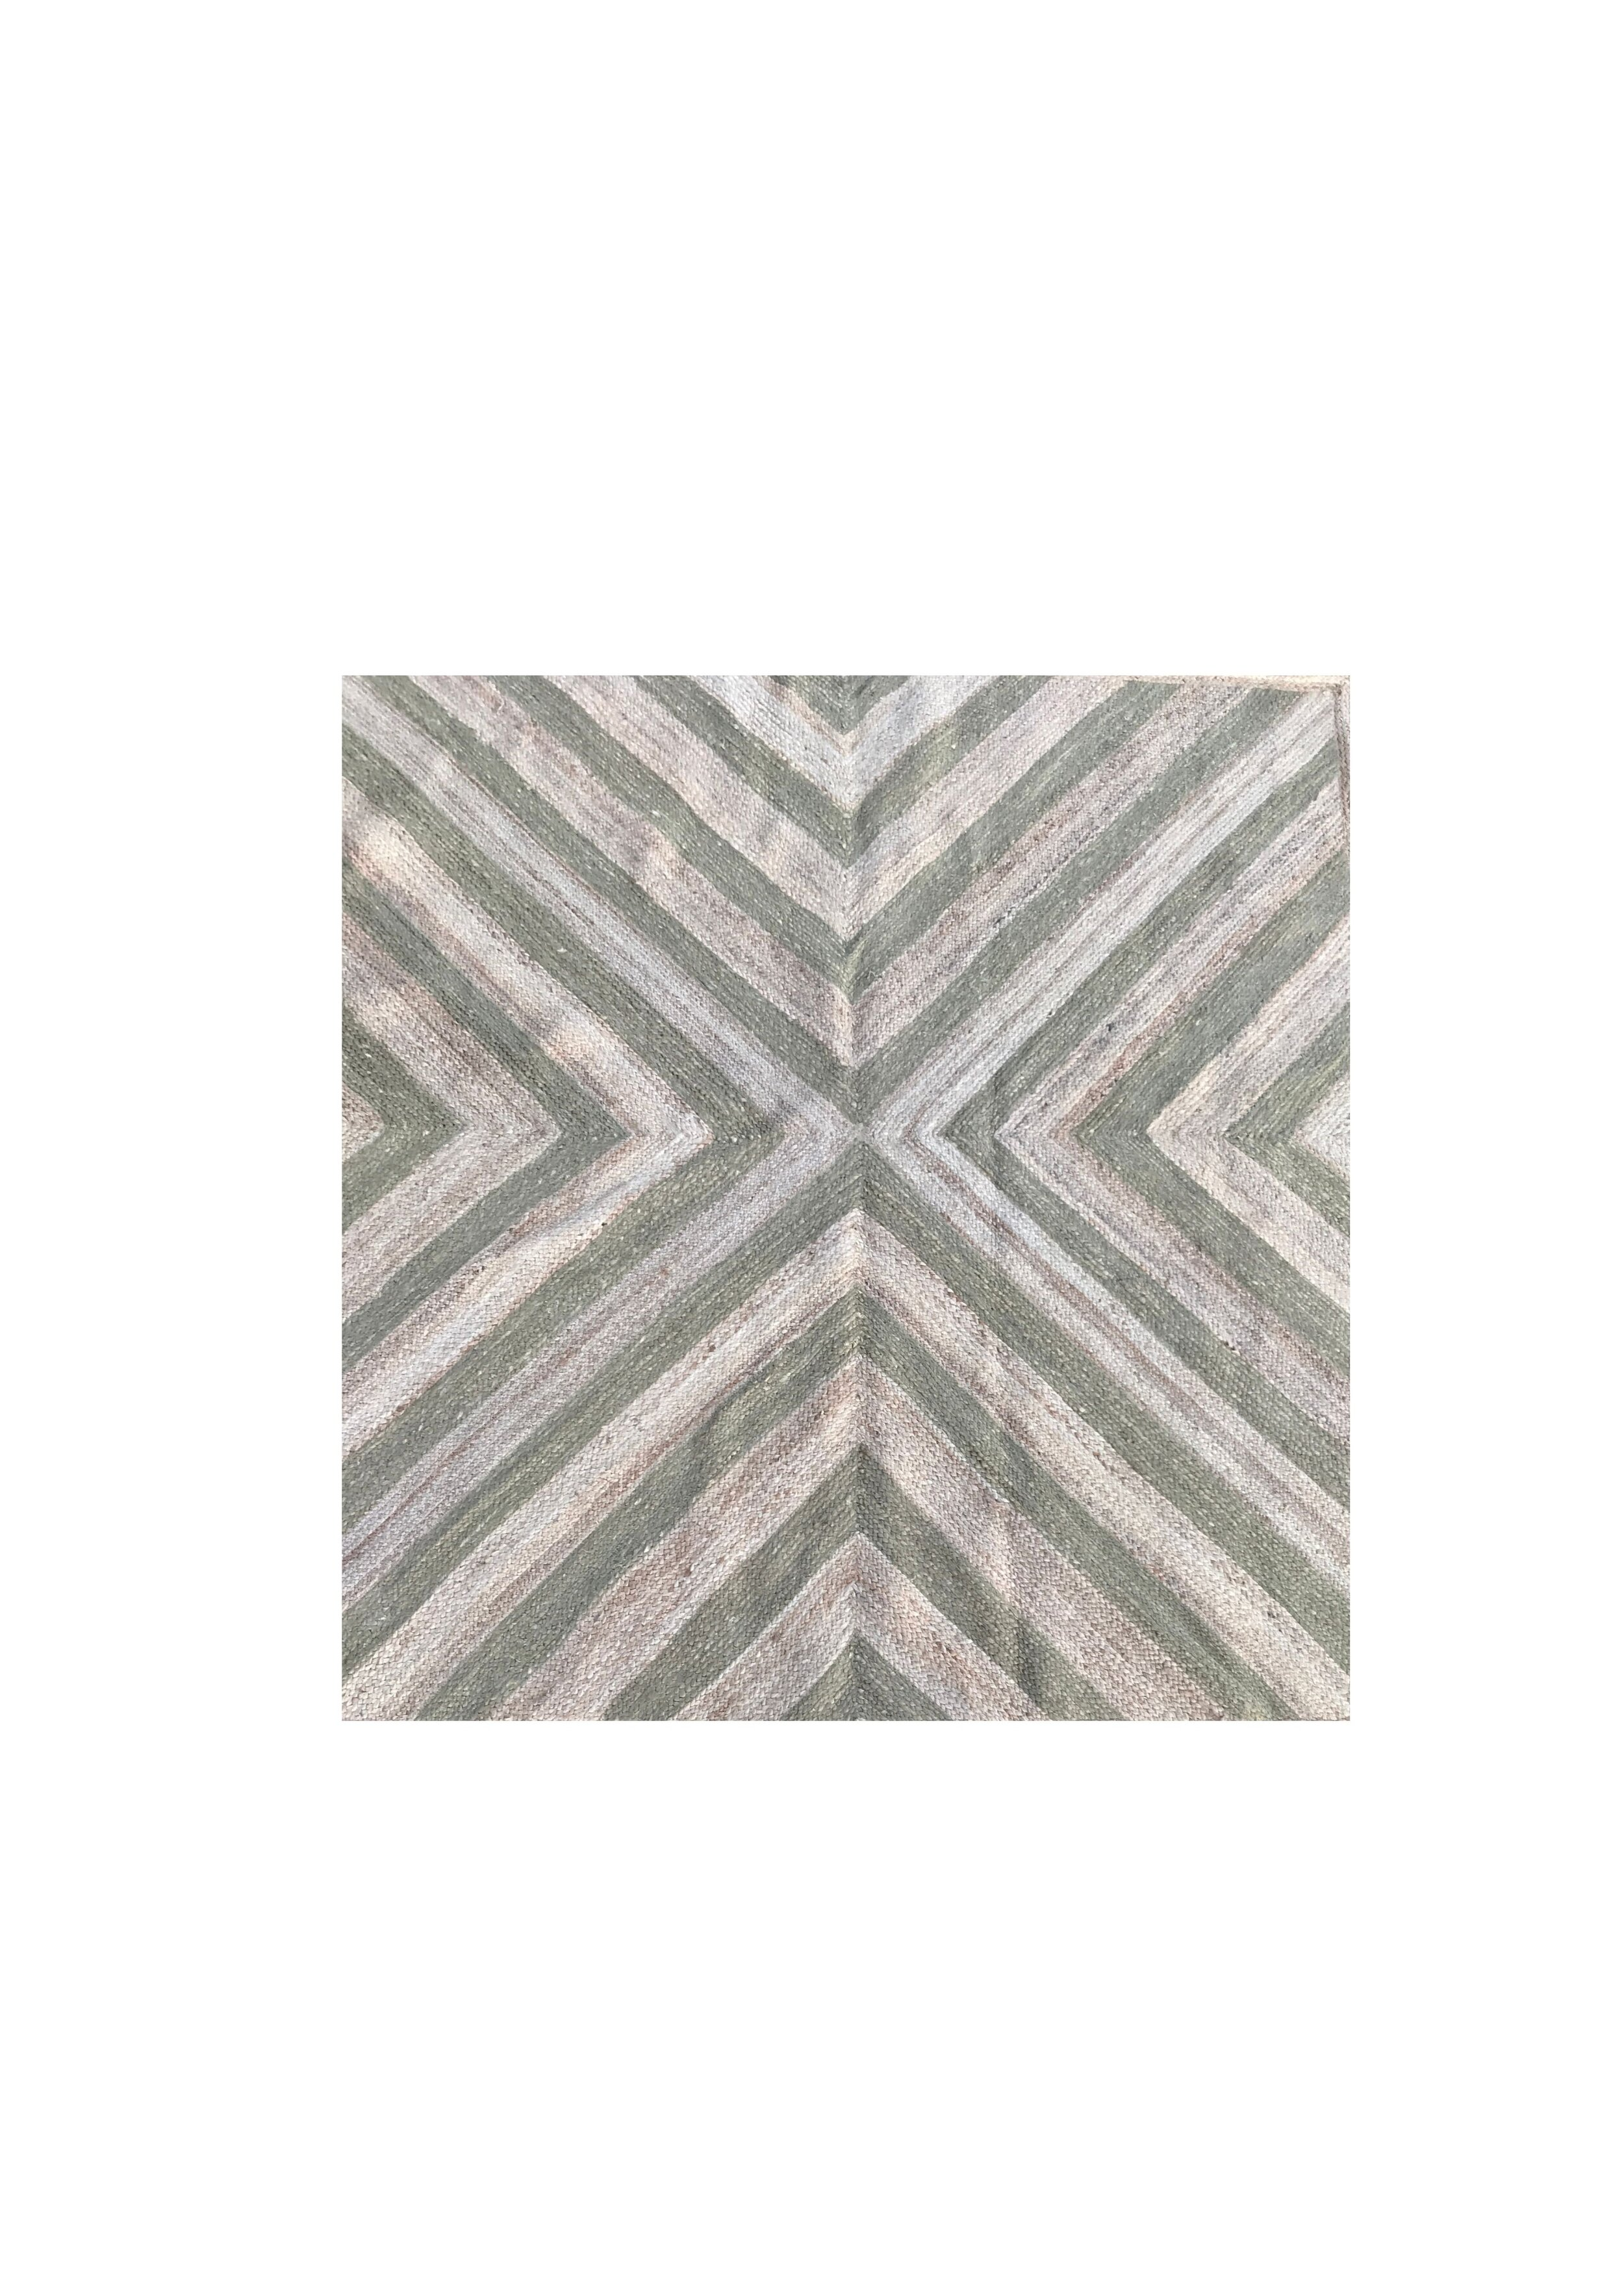 green and tan jute rug 8x8 allaire rentals